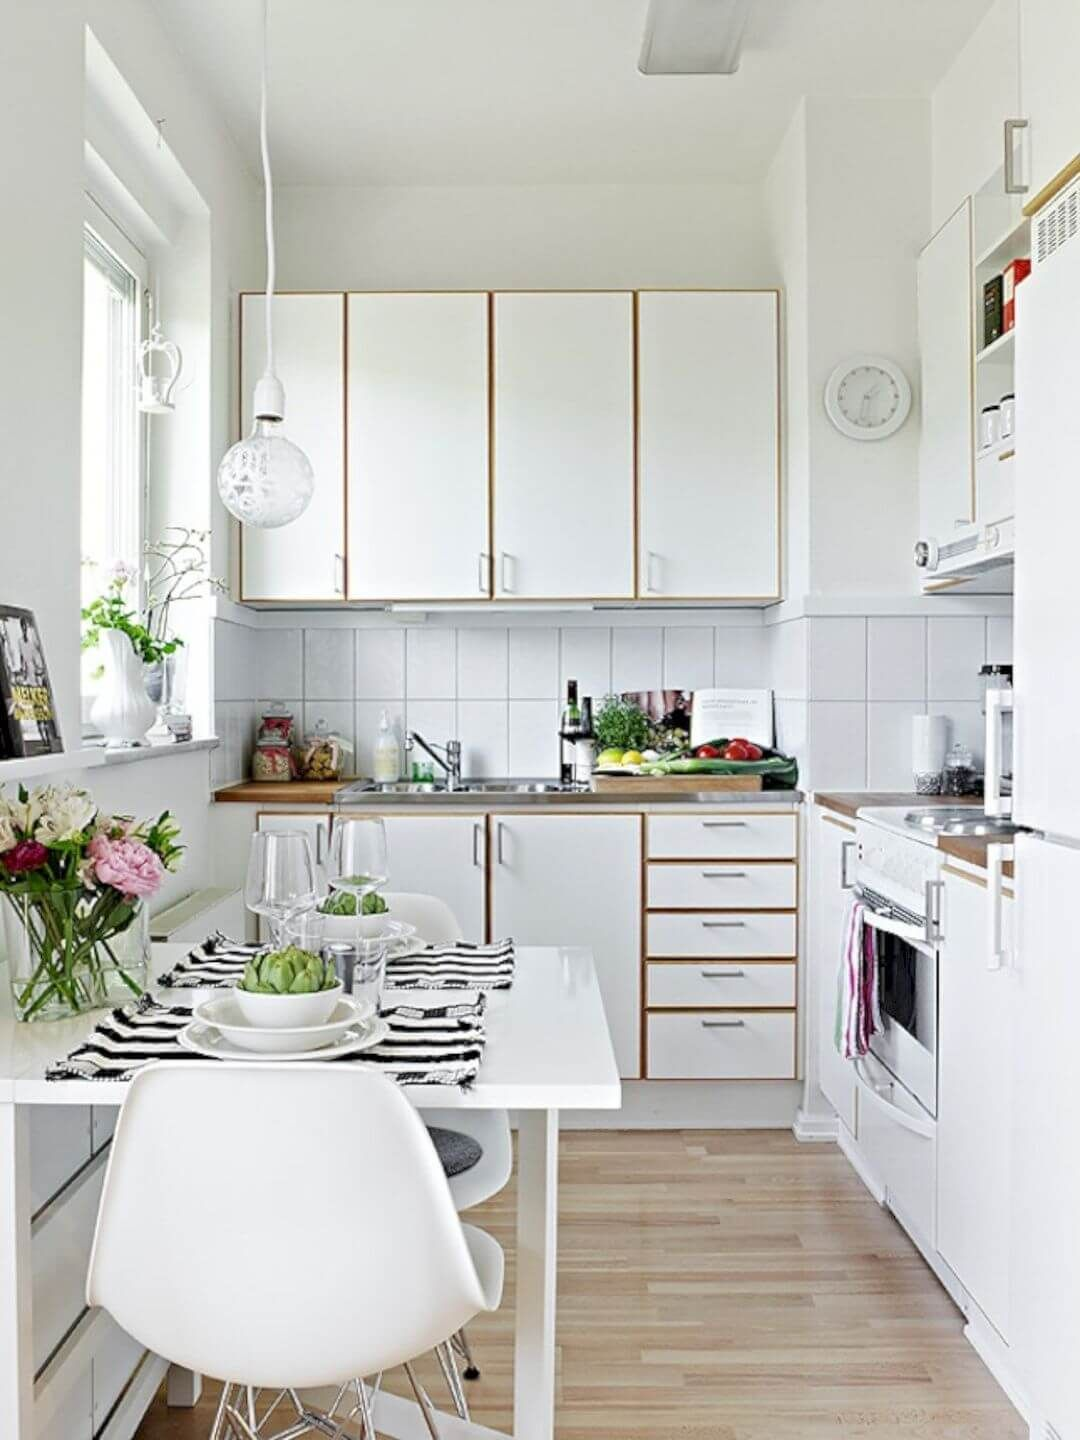 39 Exceptional Ways to Improve and Decorate with a Very ...